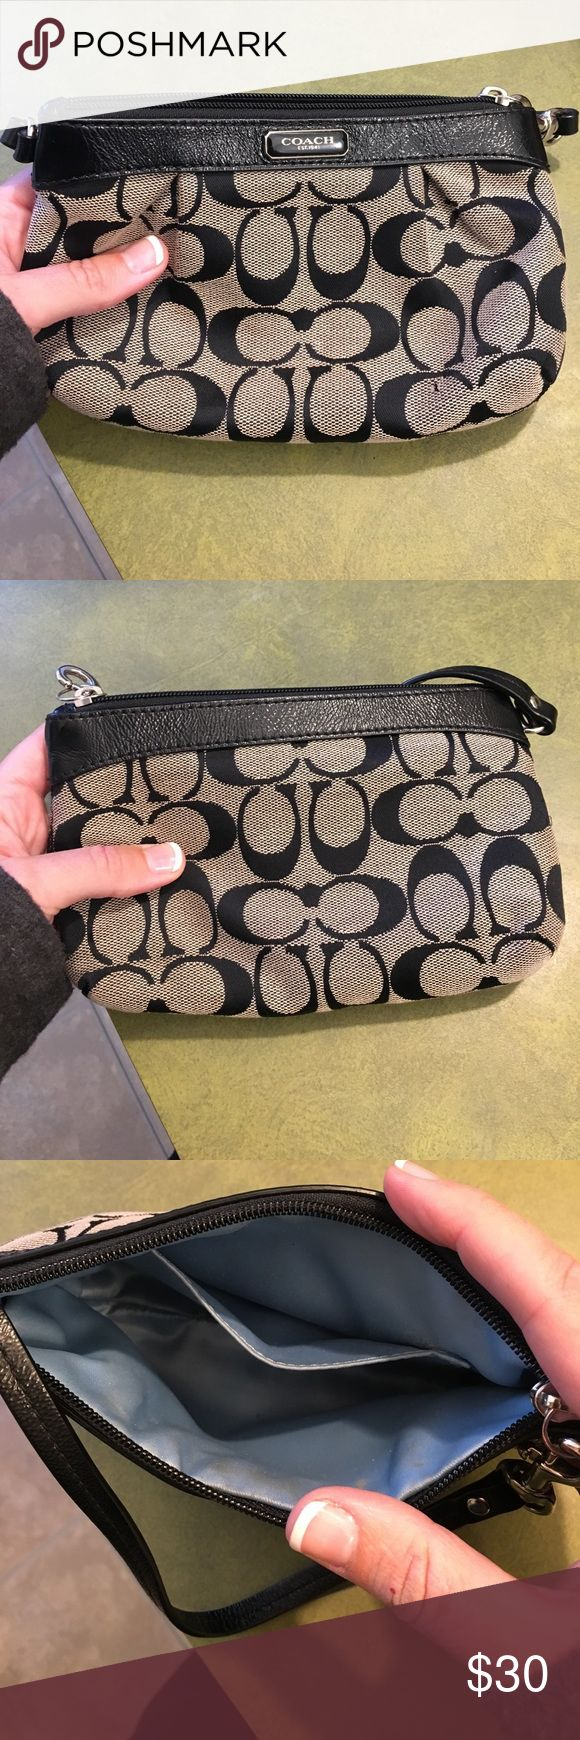 Coach clutch: black and grey Coach clutch in great condition.  Has a strap so it can be worn as a wristlet.  Minimally used. Coach Bags Clutches & Wristlets